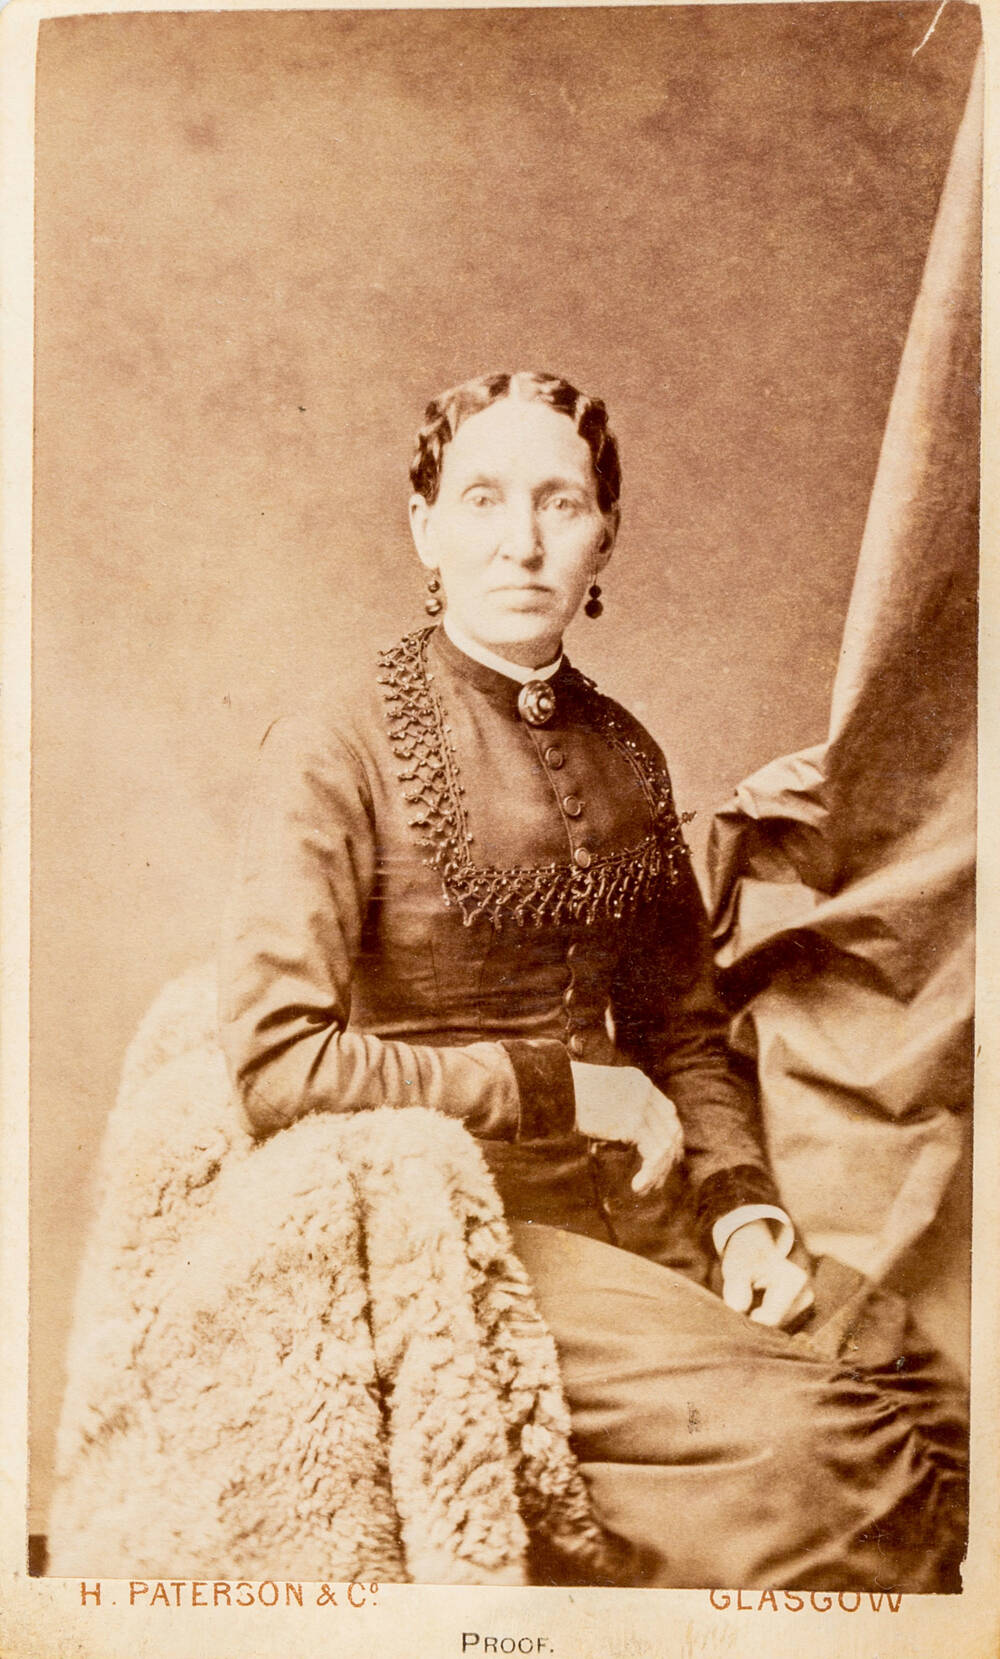 A black and white photo of a woman sitting on a fleece-covered chair. She wears a dark dress with beaded decoration.